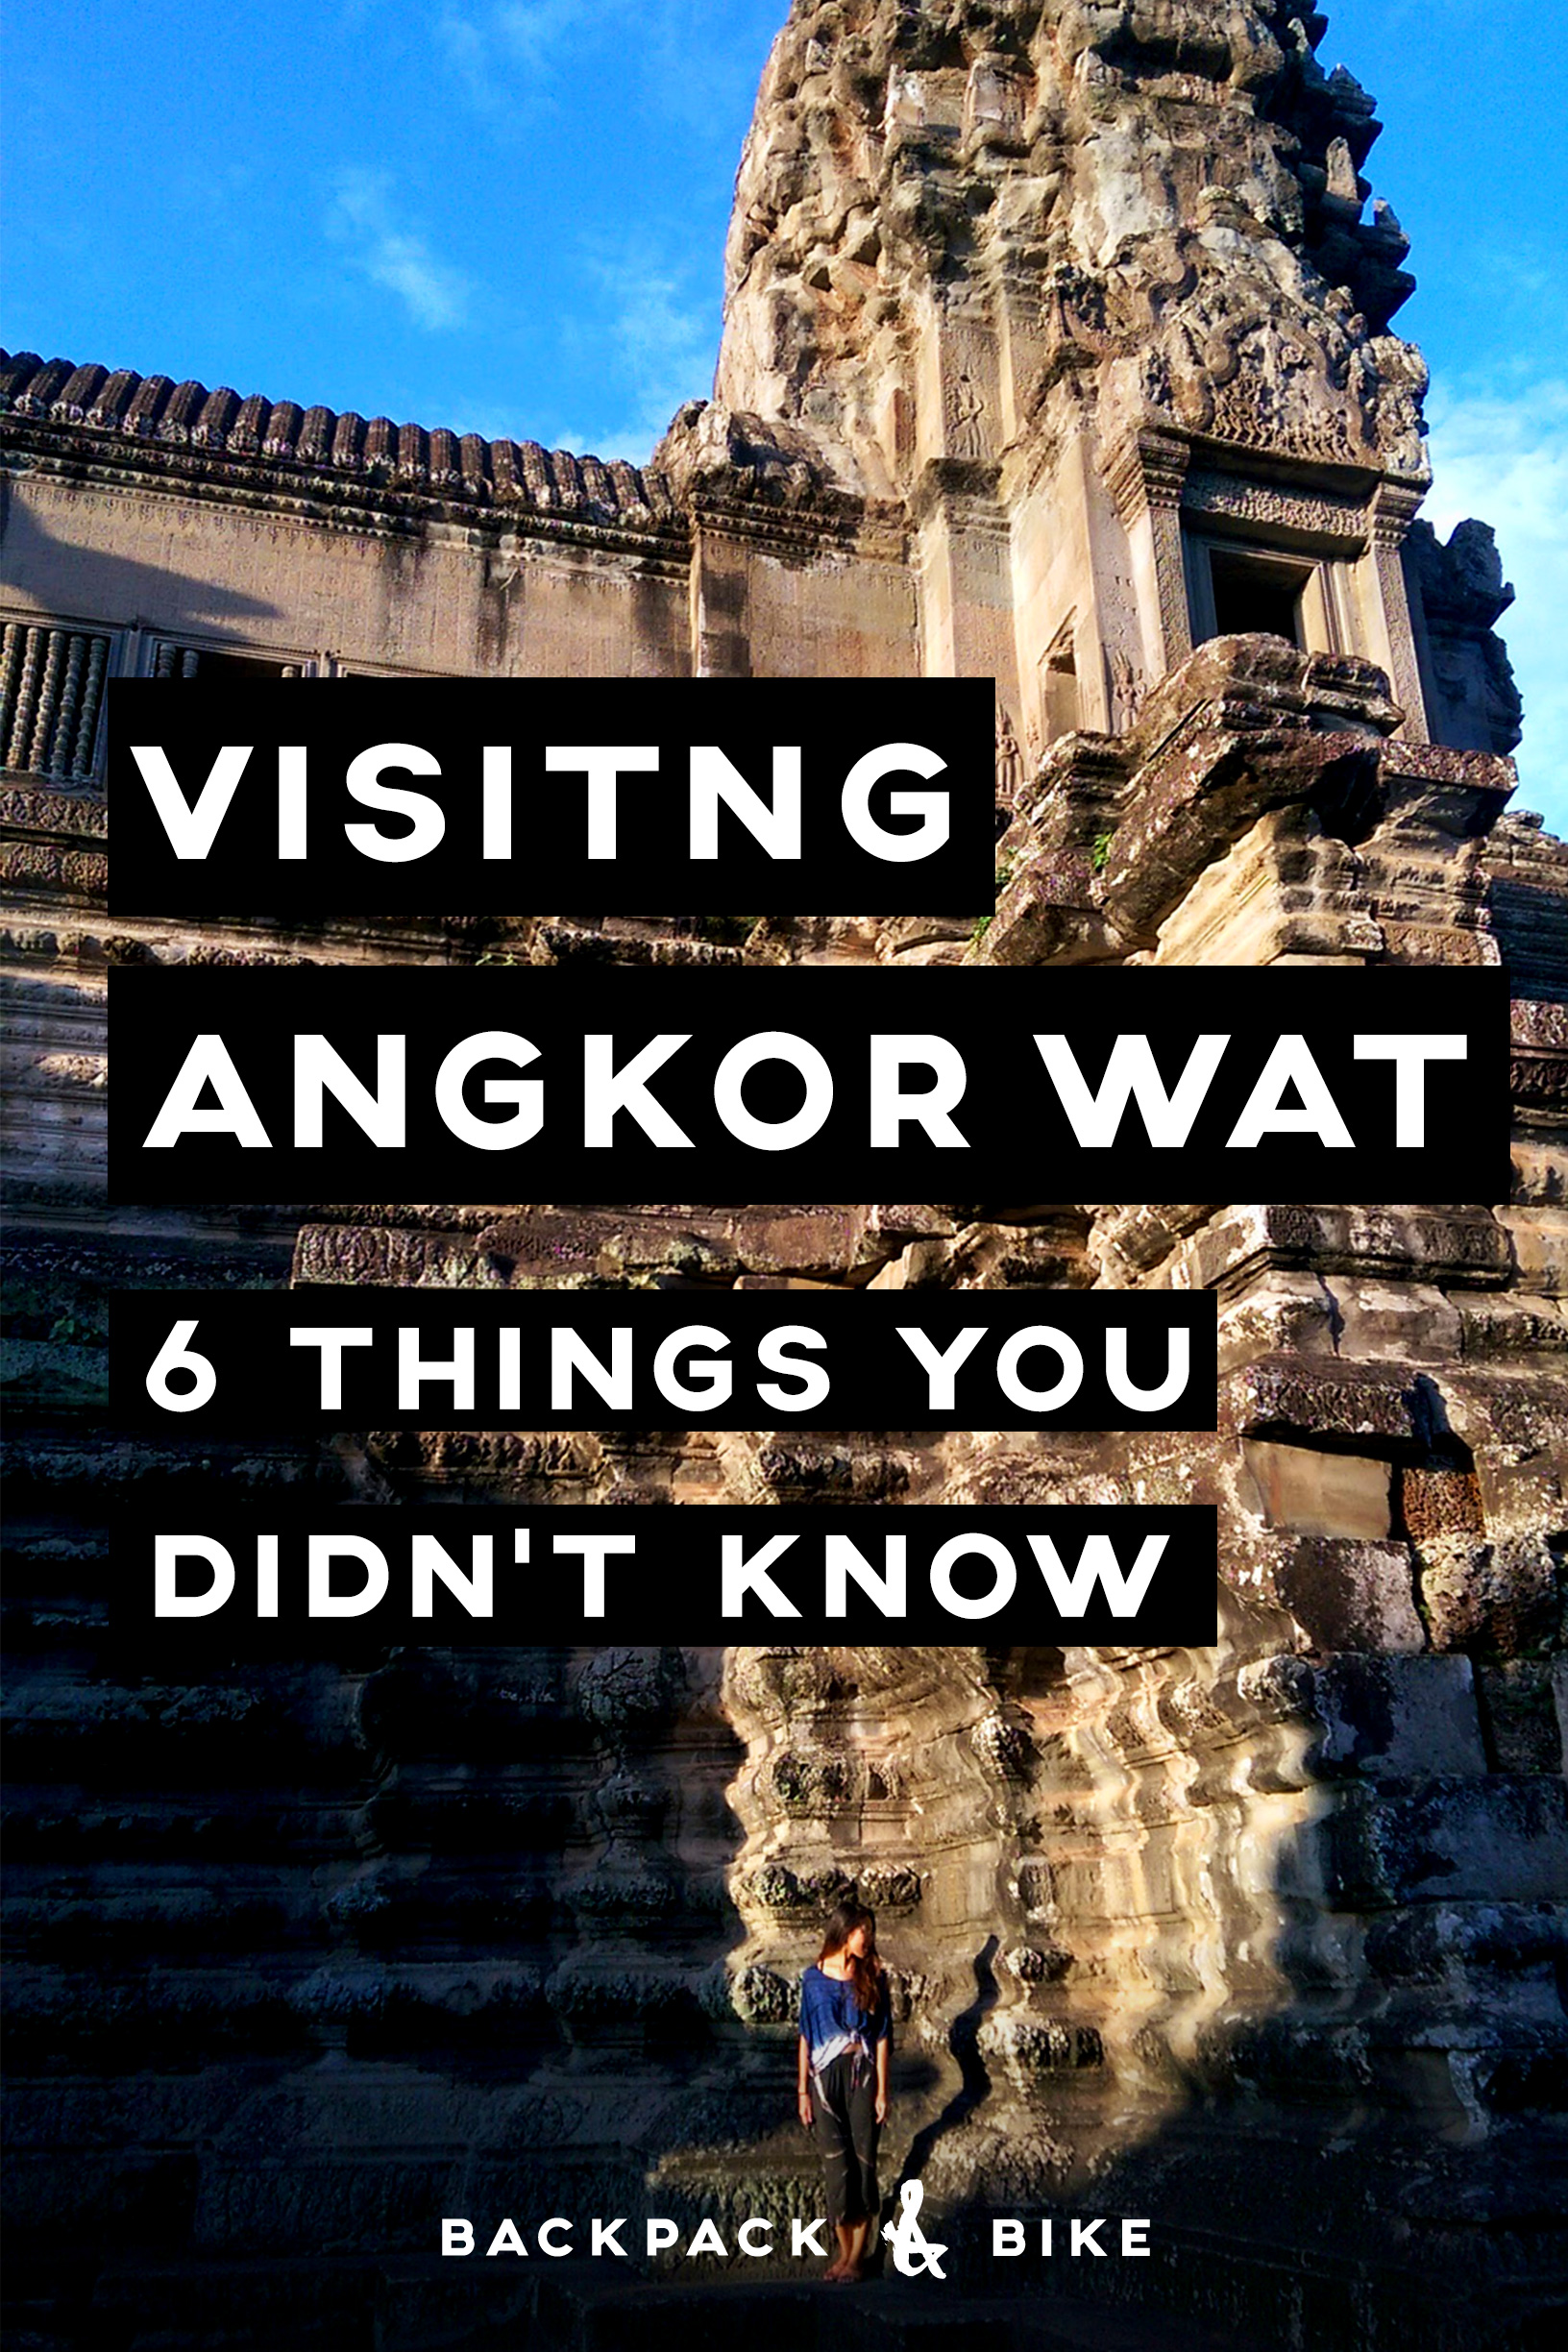 Visiting Angkor Wat | 6 Things You Didn't Know | So you're in (or planning a visit to) Southeast Asia. Have you considered a trip to Siem Reap, Cambodia to visit Angkor Archeological Park (Angkor Wat)?